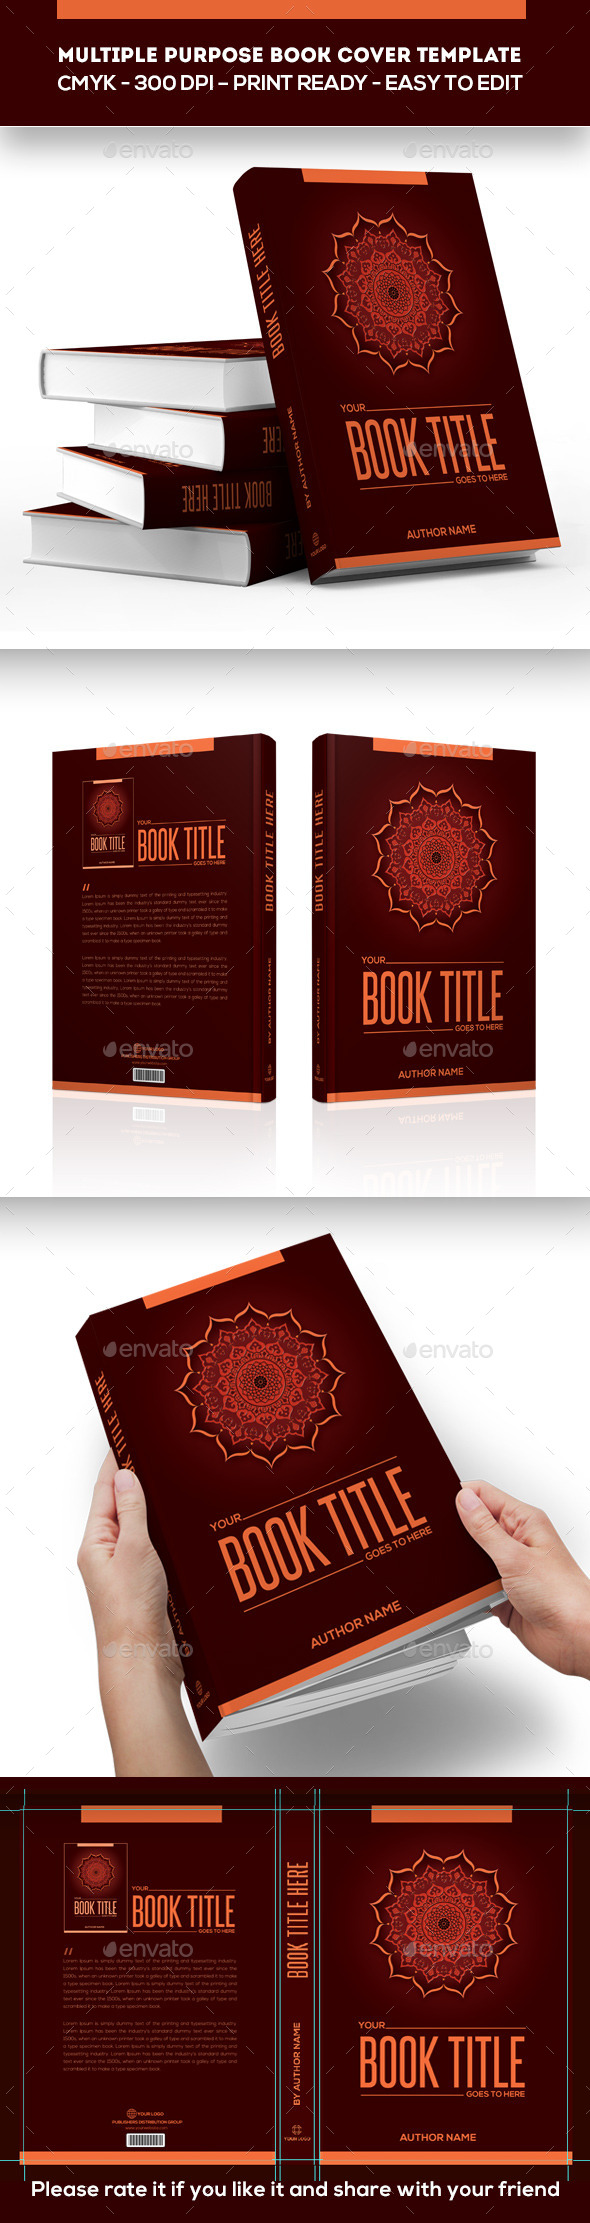 GraphicRiver Multiple Purpose Book Cover Template 11940931